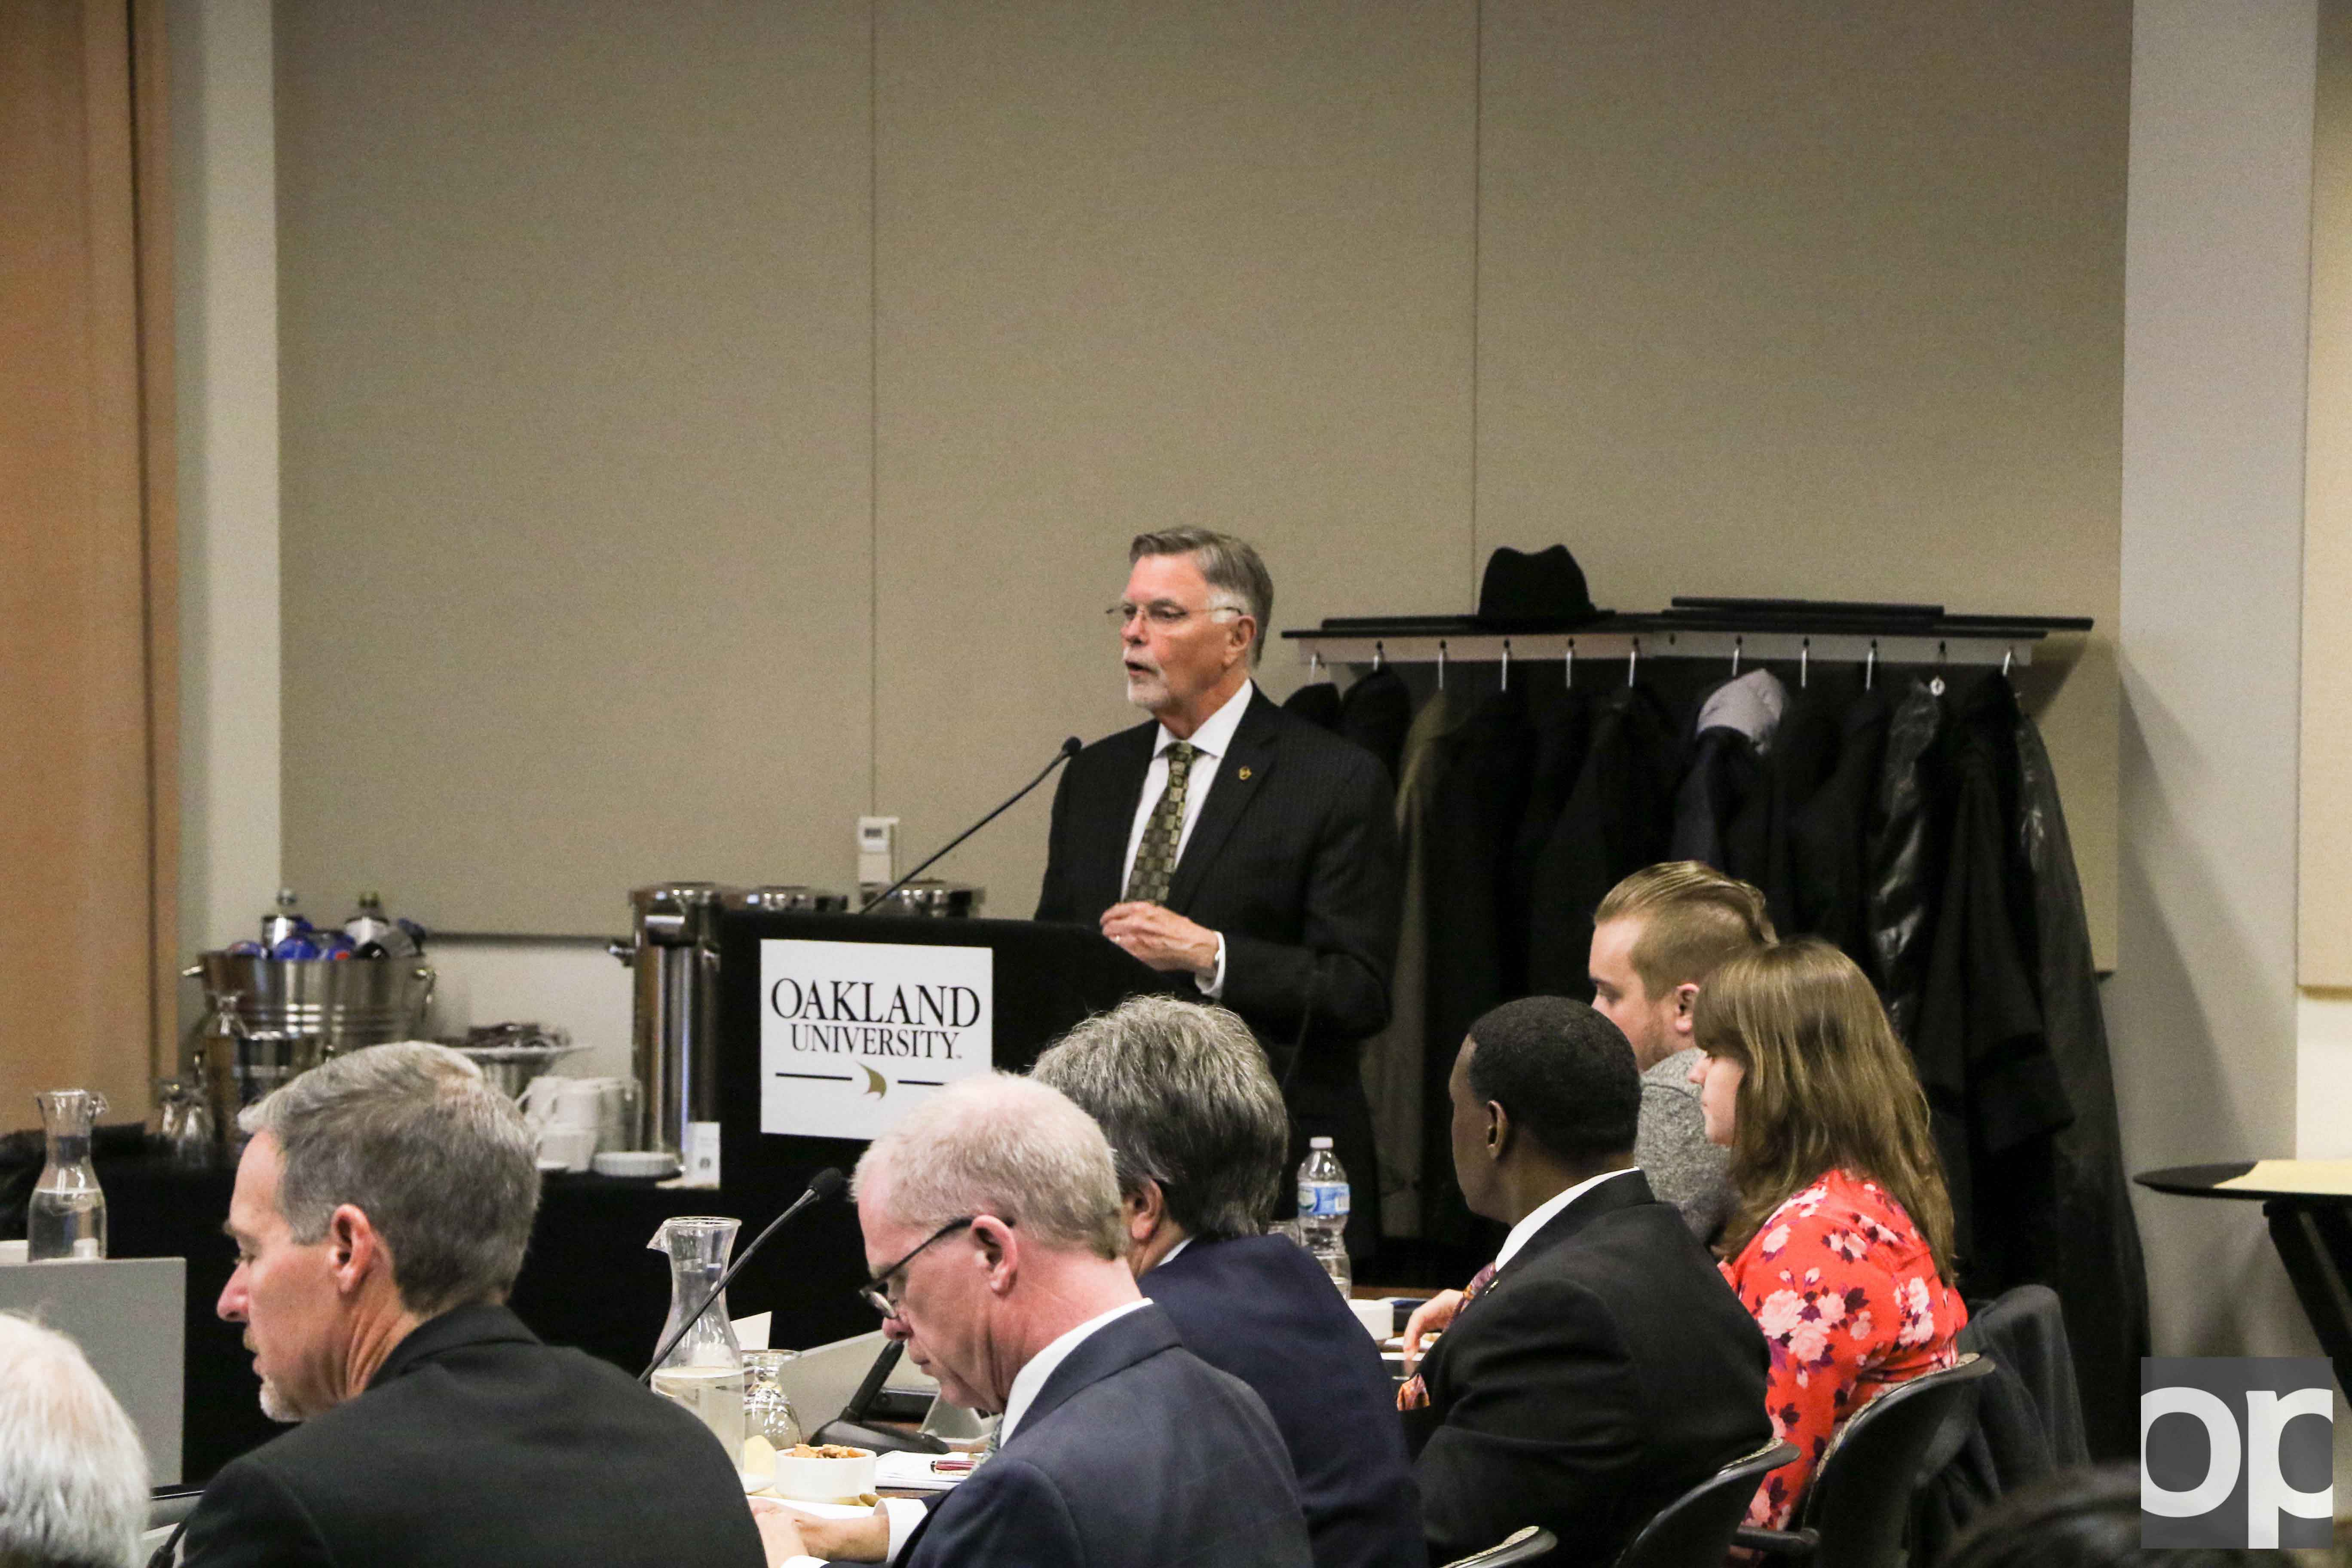 Oakland University Board of Trustees held a meeting on Monday, Dec. 5 to discuss new plans, continuing projects and successes of the school year.